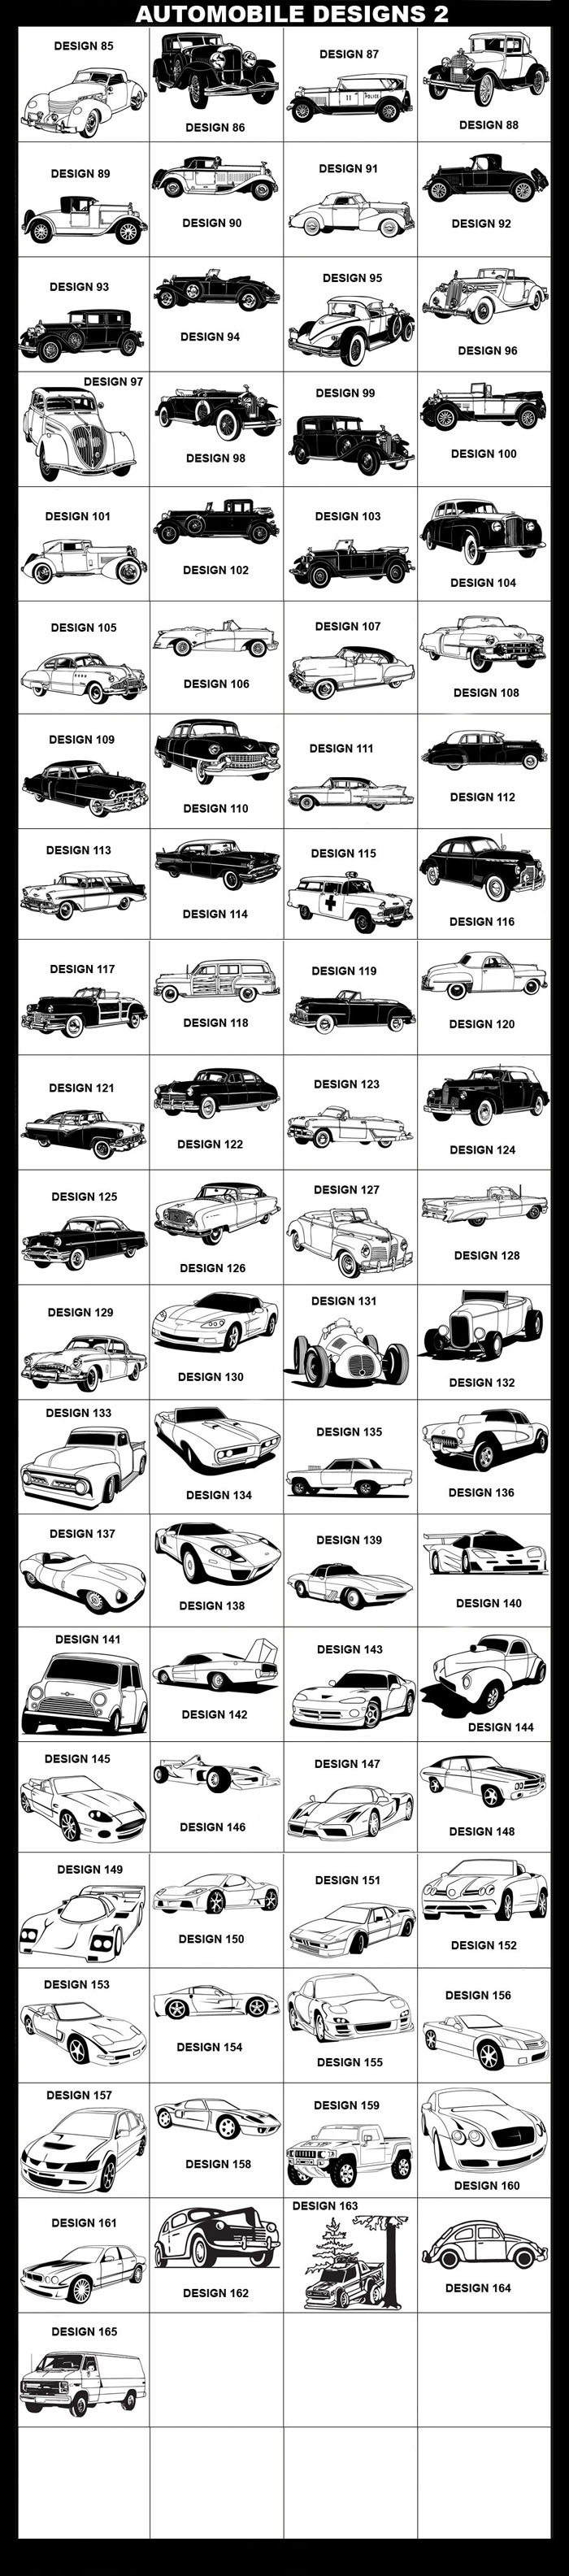 Automobile Designs 2: Car, Truck, Cord Sportsman, Stutz Model M, Cadillac Sixty Special, Duesenberg, Ford Lincoln Police Flyer, Chevrolet Bel Air Nomad, Ford Model A Sport Coupe, Franklin 11-A, Isotta Franschini, Stutz Model MB, Lasalle Model 5067, Lincoln Model L, Packard Model 443 Sedan, Packard Speedster, Packard V-12 Roadster, Peugeot 402 B, Rolls Royce, Stutz Model 8AA, Wills Sainte Claire, Bentley, Buick Roadmaster, Buick Skylark, Cadillac Coupe de Ville, Cadillac El Dorado, Cadillac Fleetwood, Chevrolet Bel Air Sedan, Chevrolet Special, Chrysler Town & Country, Chrysler Station Wagon, DeSoto Convertible, Dodge Wayfarer, Ford Crown, Hudson Commodore, Hudson Super Wasp, LaSalle Special, Cadillac Fleetwood Sixty, Mercury Monterey, Nash, Plymouth P-10, Pontiac Catalina, Studebaker President